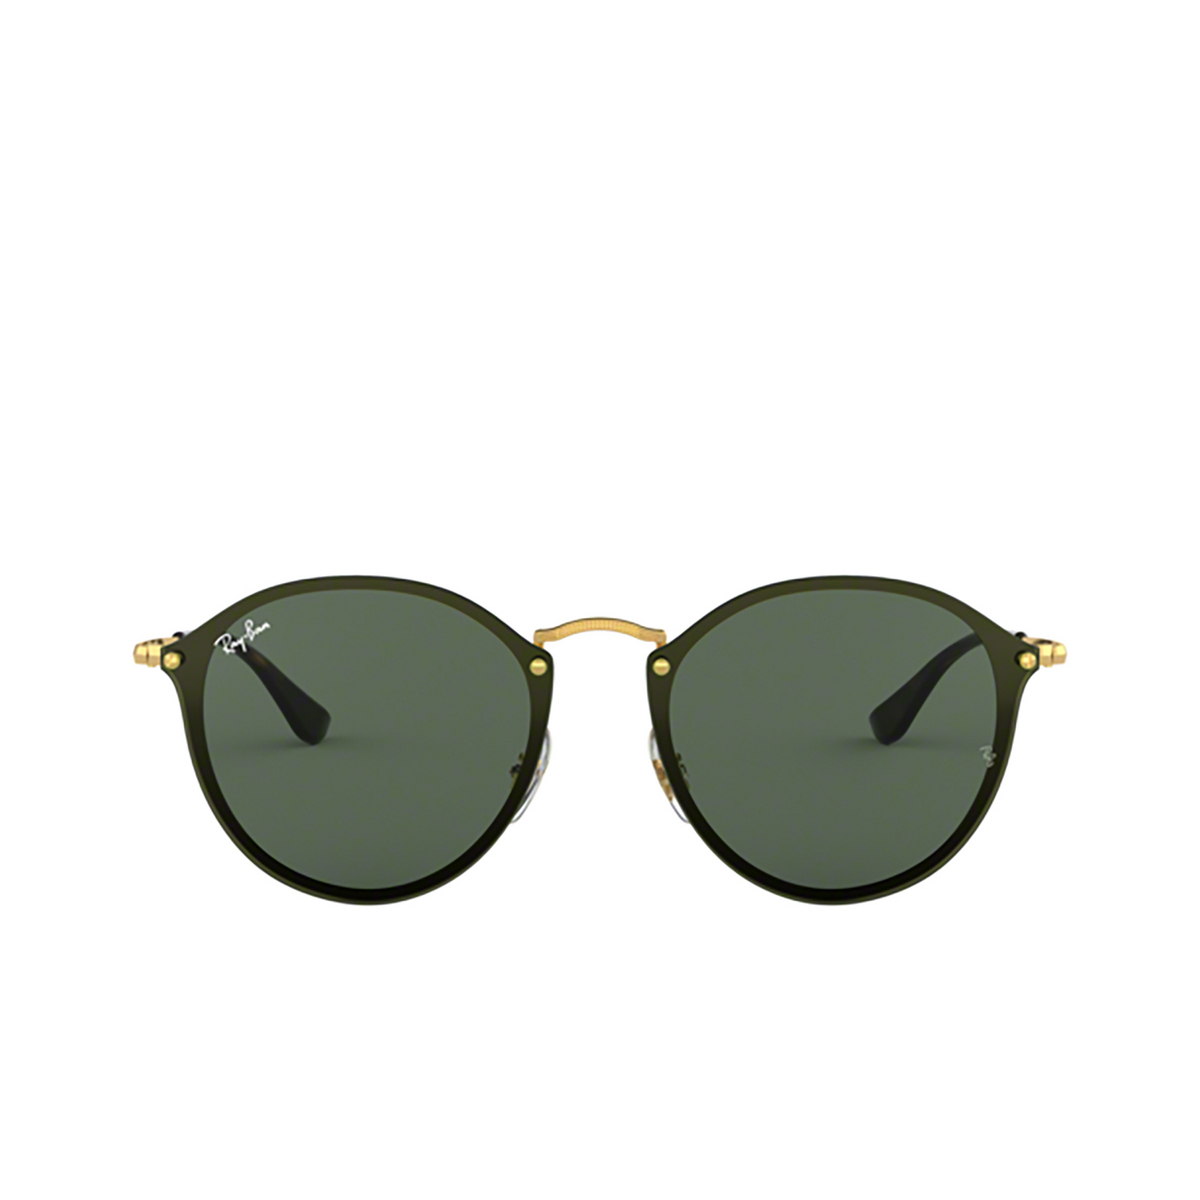 Ray-Ban® Round Sunglasses: Blaze Round RB3574N color Arista 001/71 - 1/3.